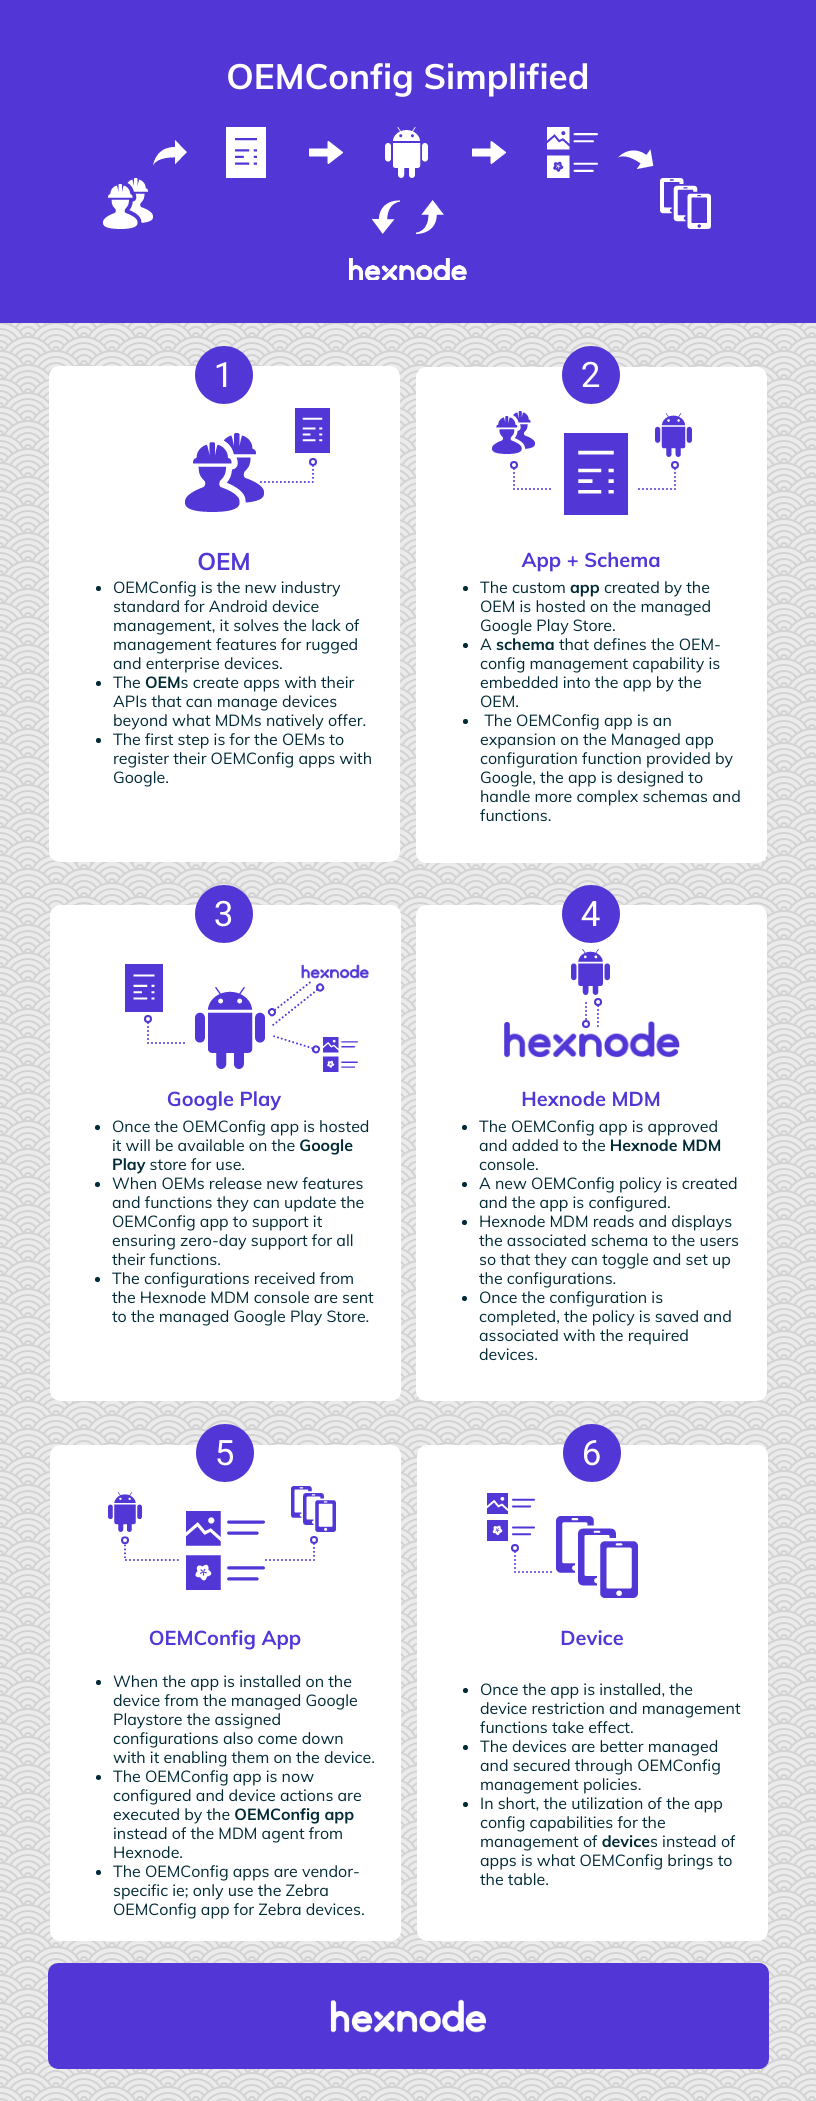 OEMConfig Simplified Infographic